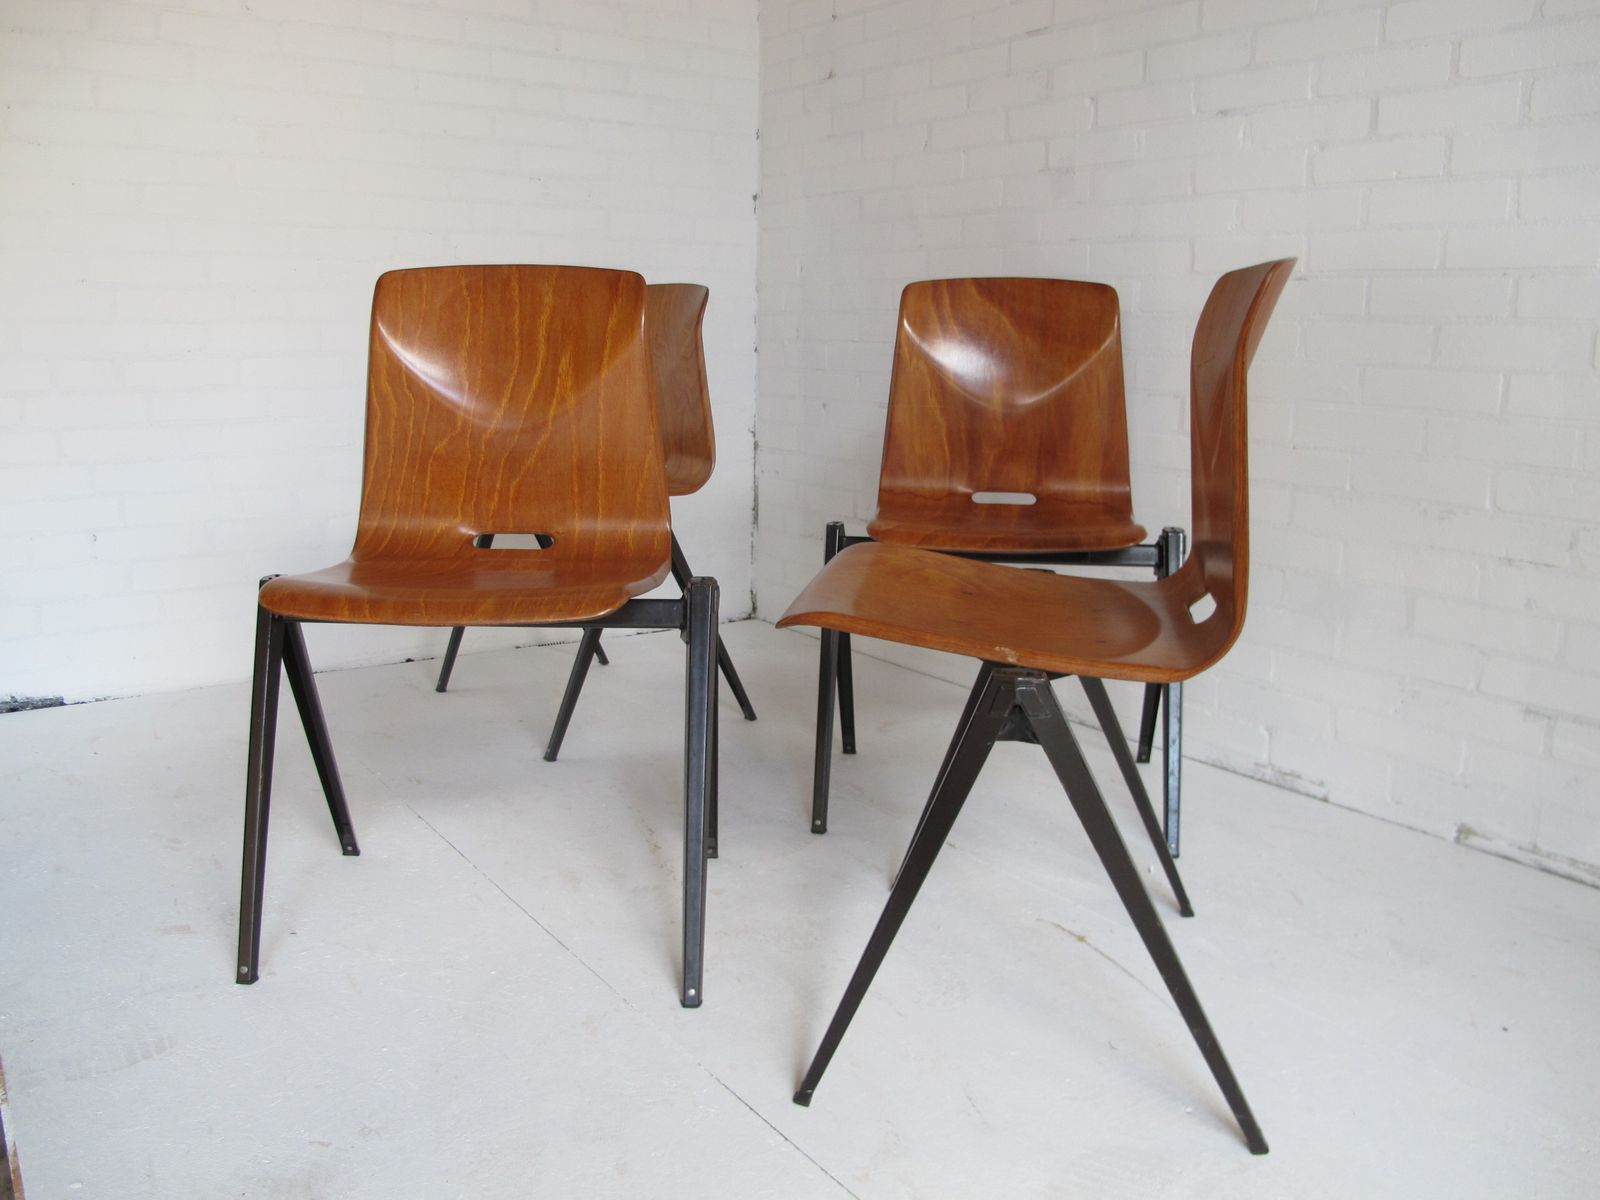 Industrial Vintage Dining Chairs from Galvanitas 1967 Set of 4